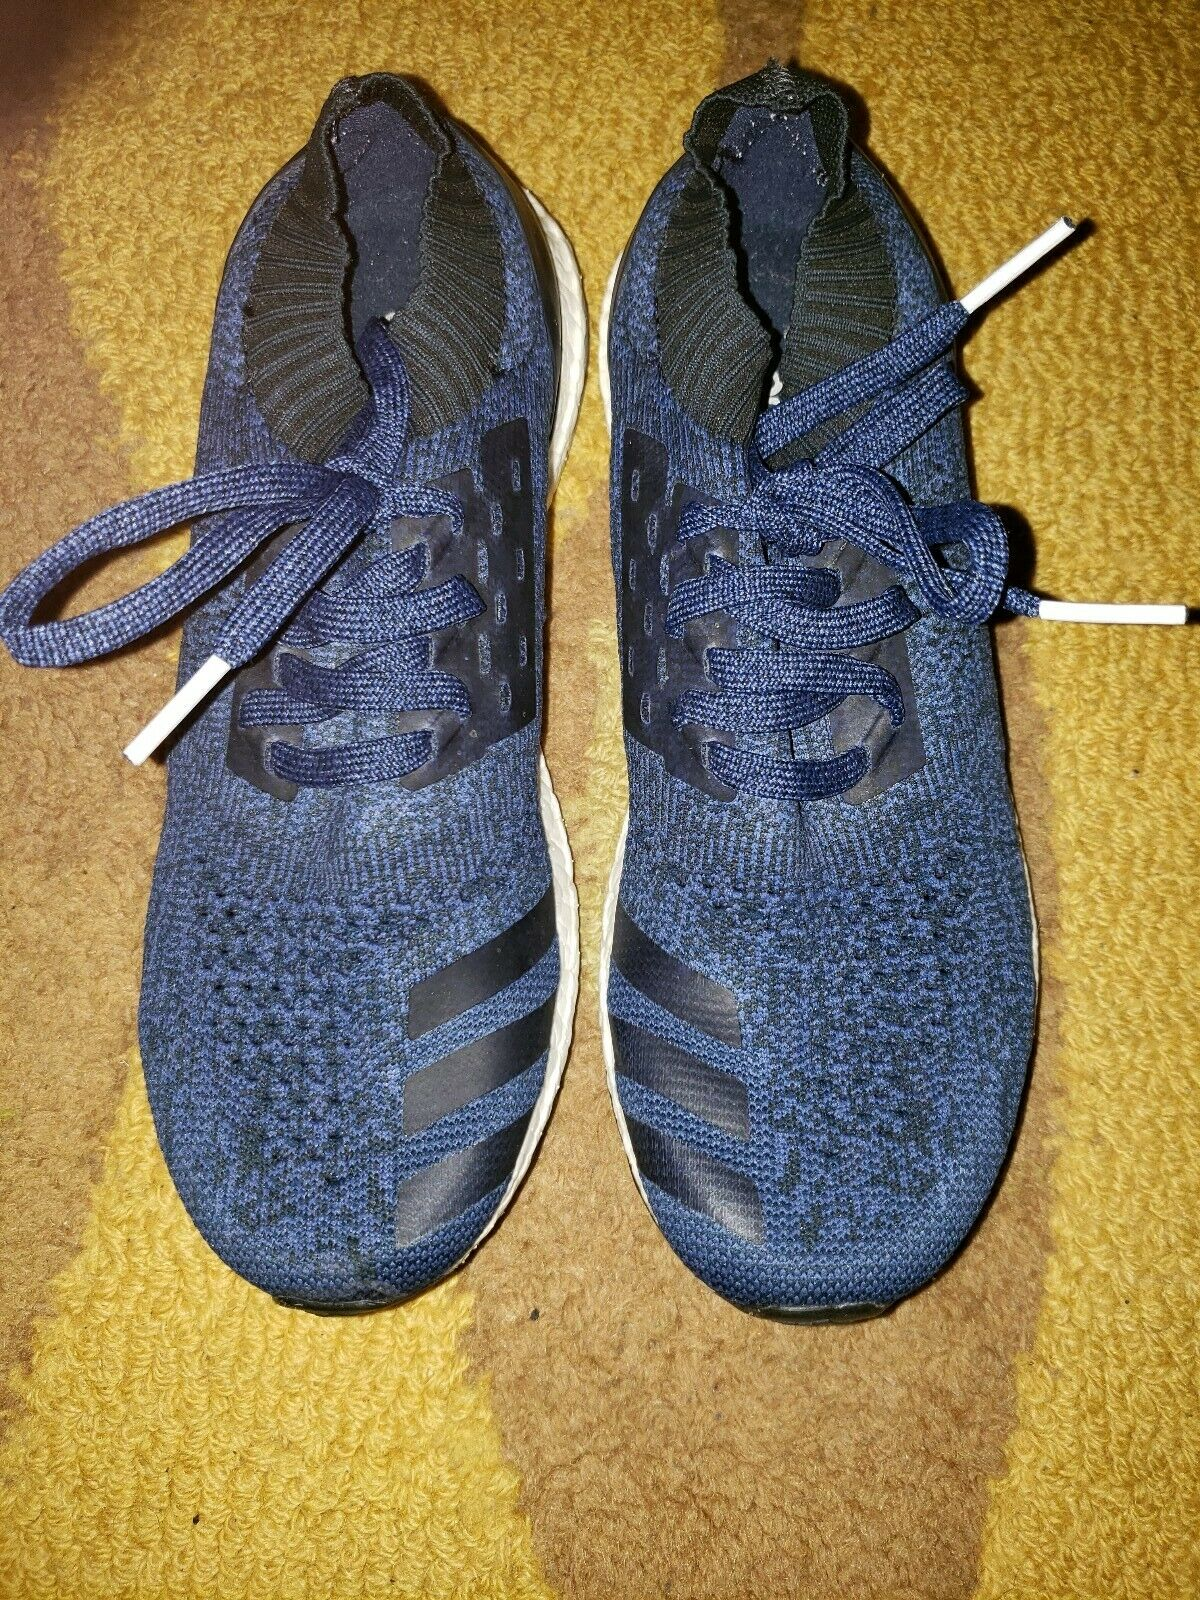 Adidas ultra boost uncaged m size 10 mens